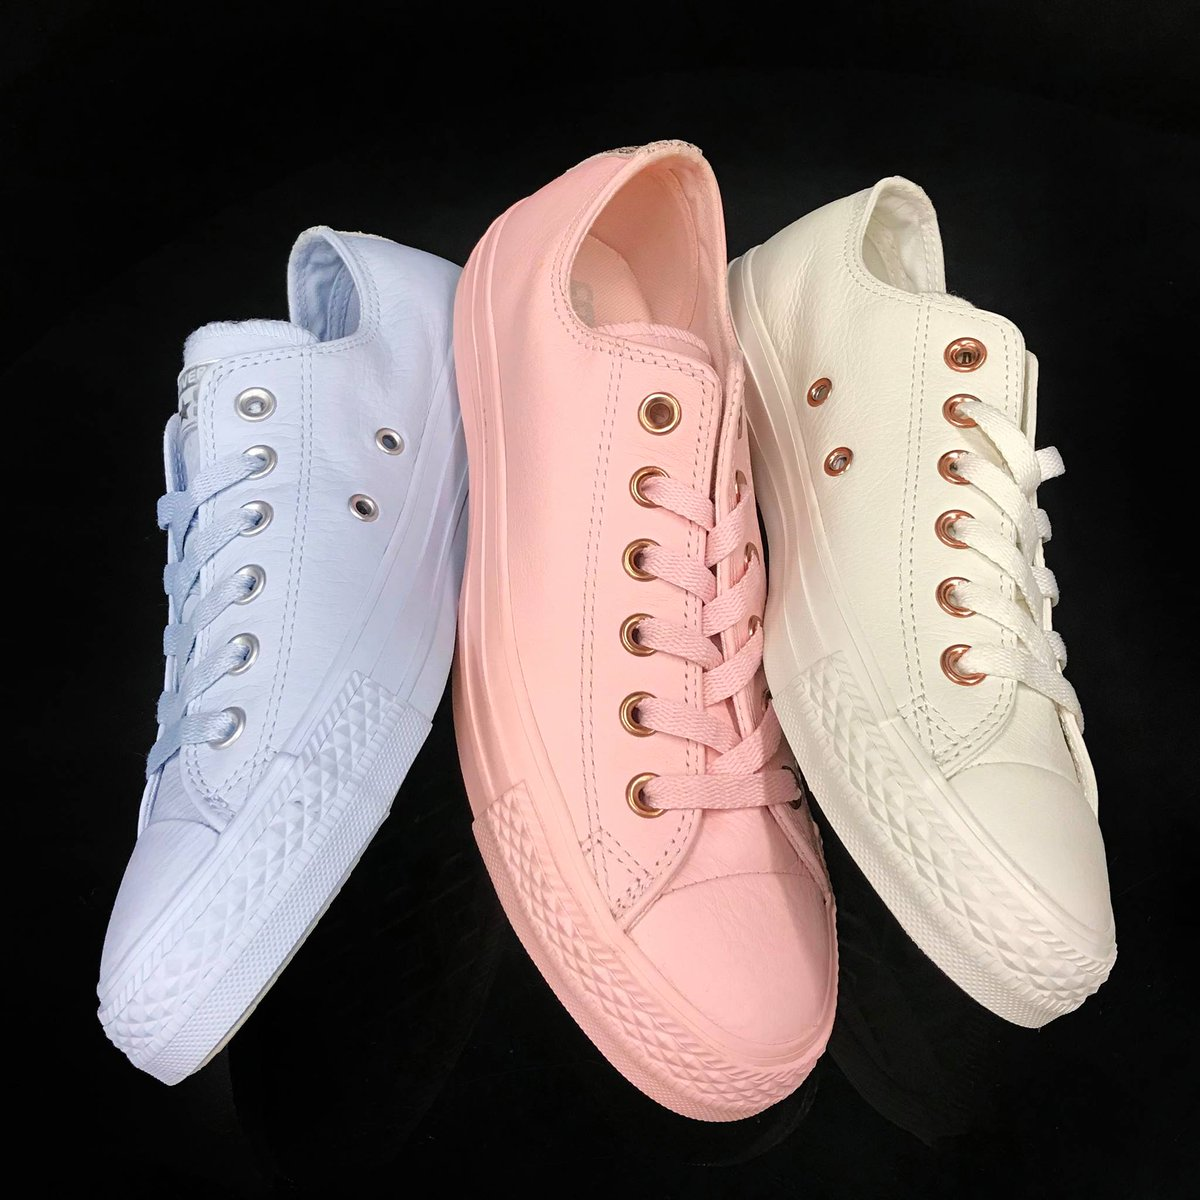 158fd9c5c46880 Available ONLY AT  journeys ! Converse Lux Leather monochrome pastels with  metallic details. Just in time for spring!  TheLoop  Journeys  Converse   Pastel ...